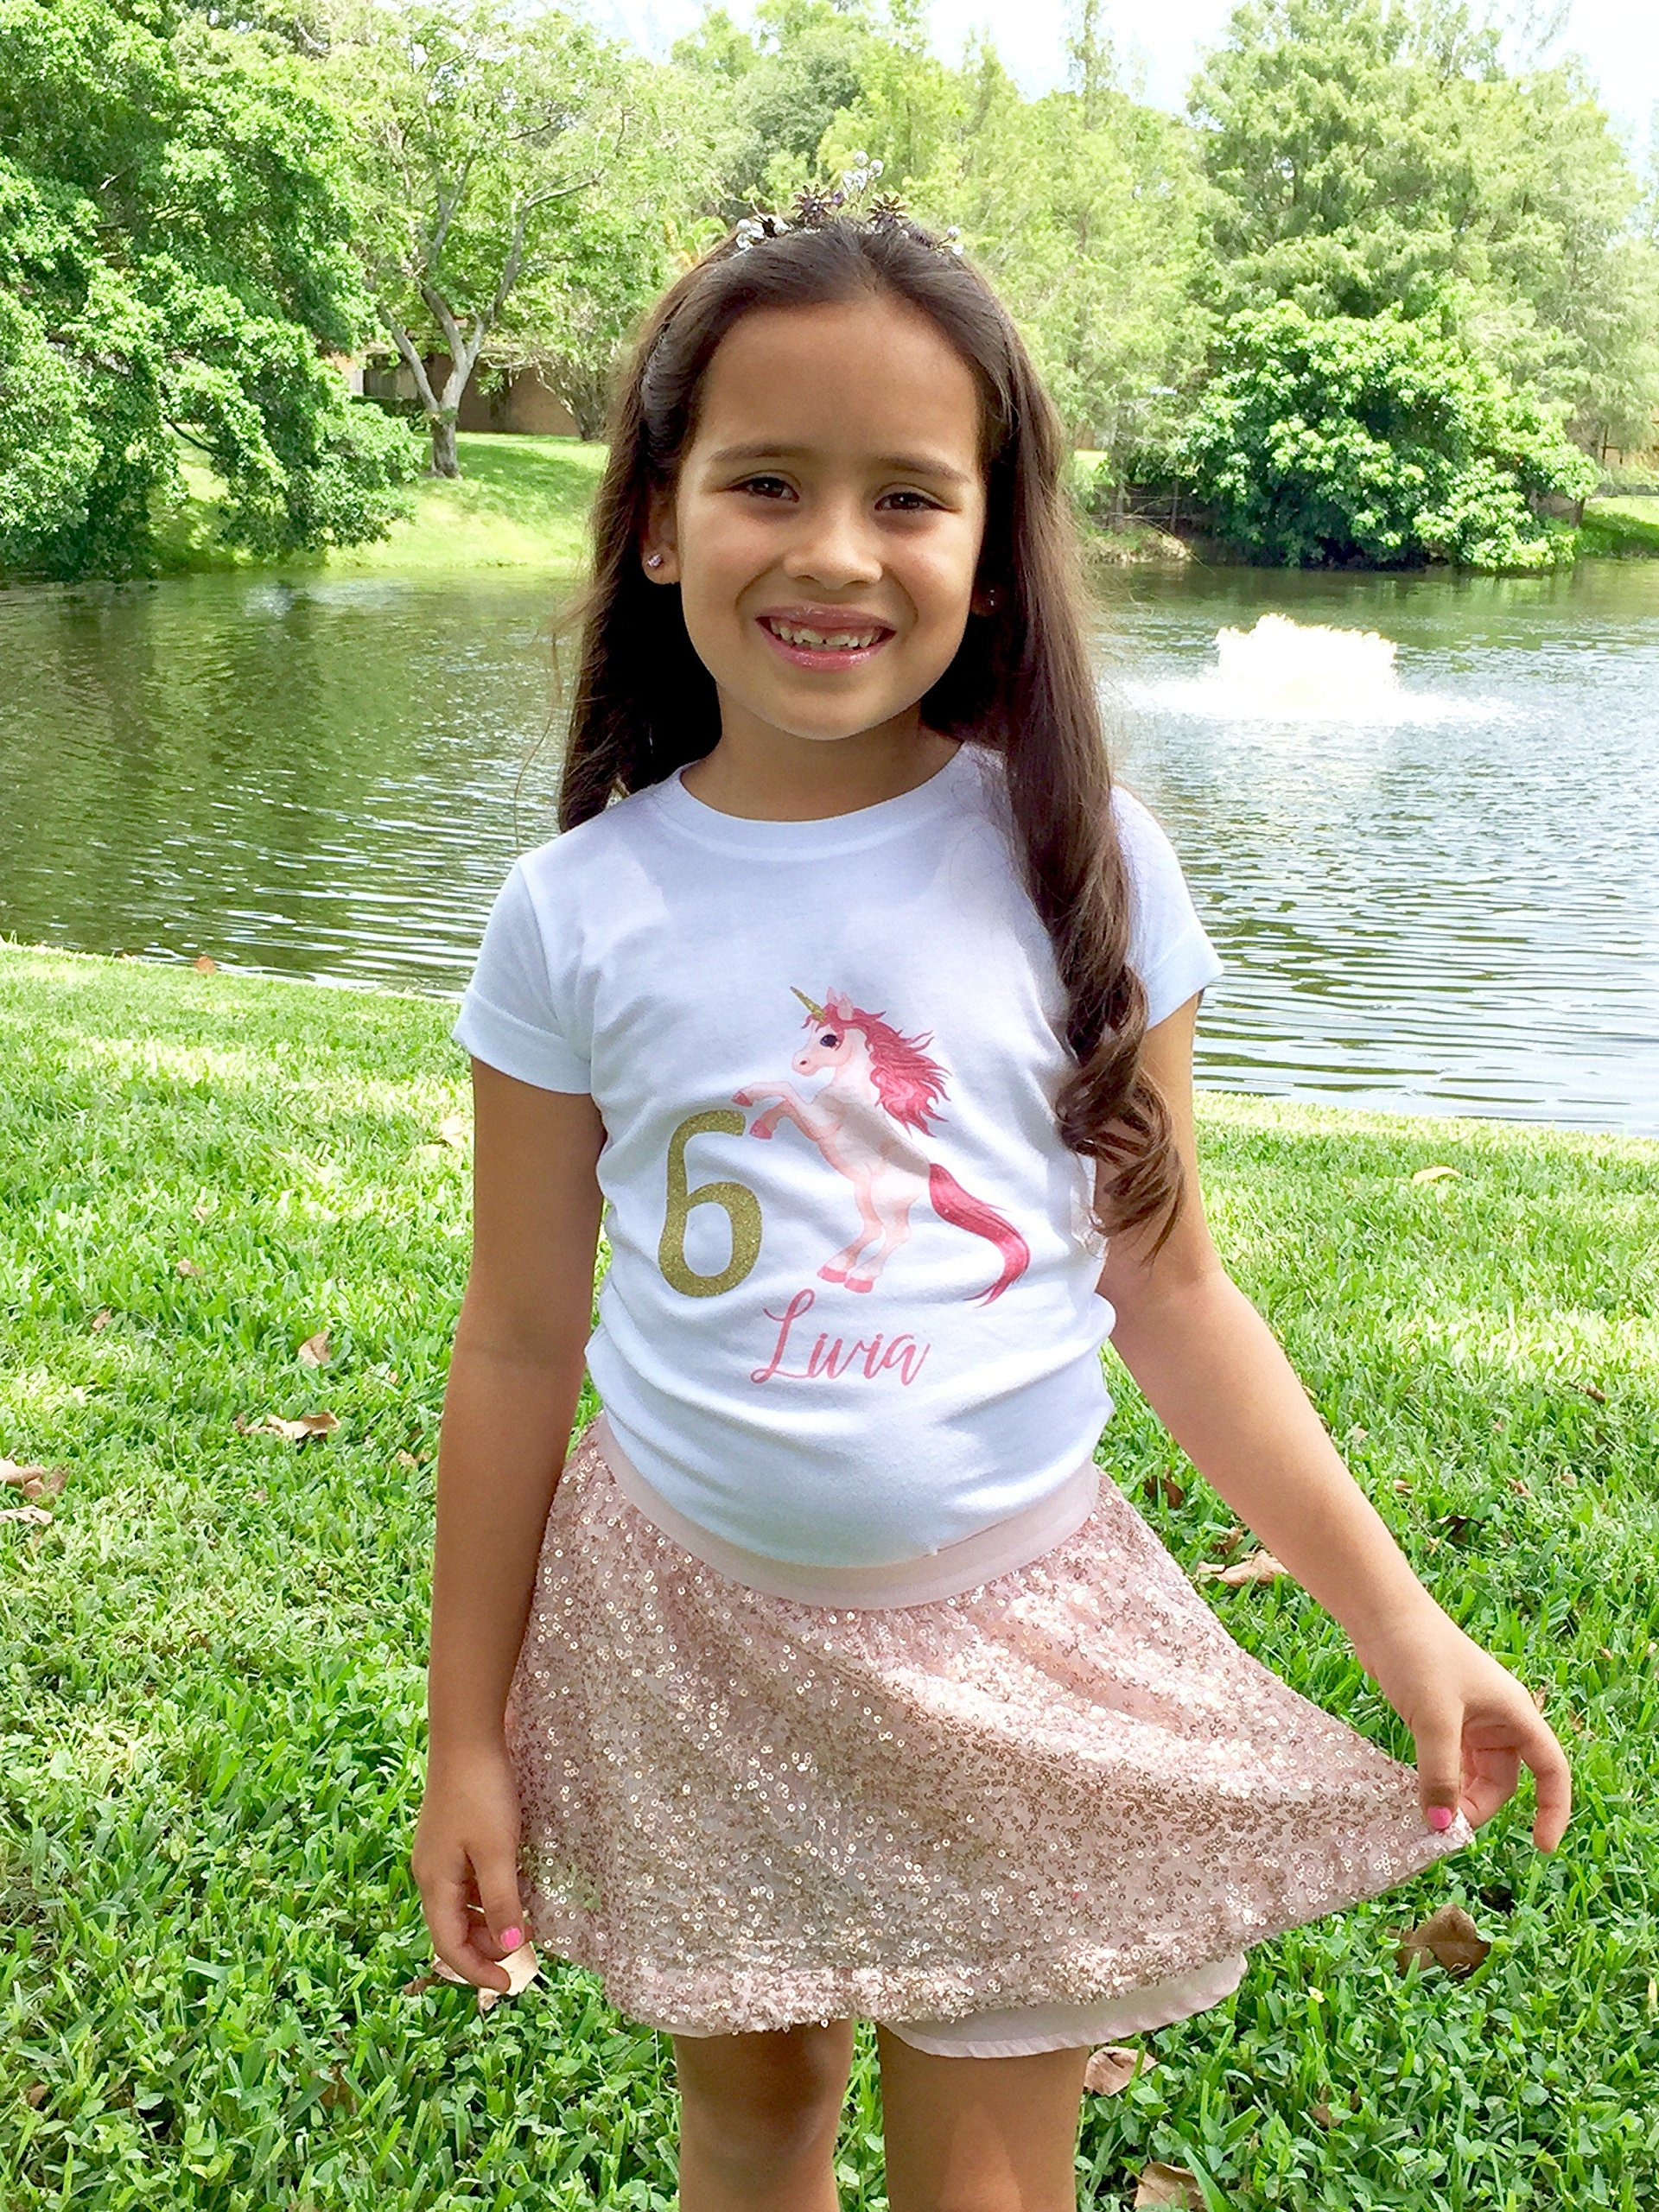 NanyCrafts' Personalized Unicorn Birthday Gold Glitter Girl's Shirt 9/10Y White by NanyCrafts (Image #3)